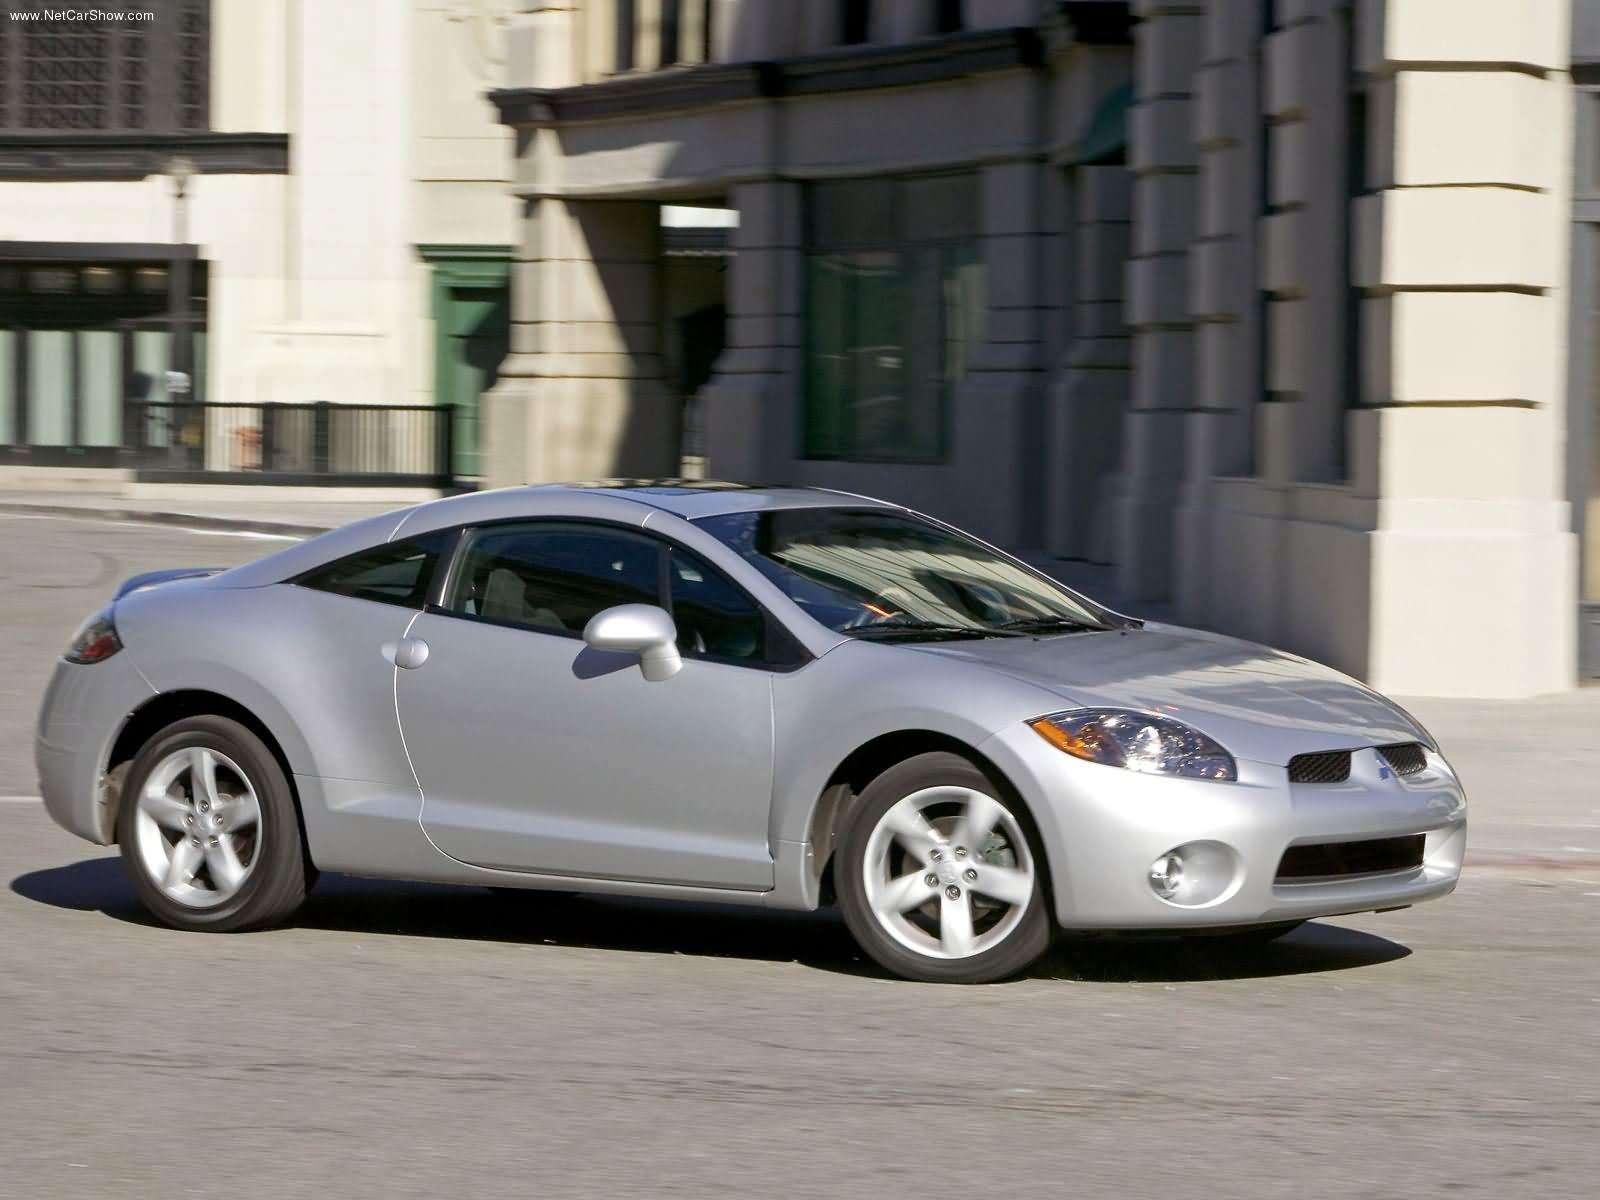 3dtuning of mitsubishi eclipse coupe 2006 unique on line car configurator for. Black Bedroom Furniture Sets. Home Design Ideas